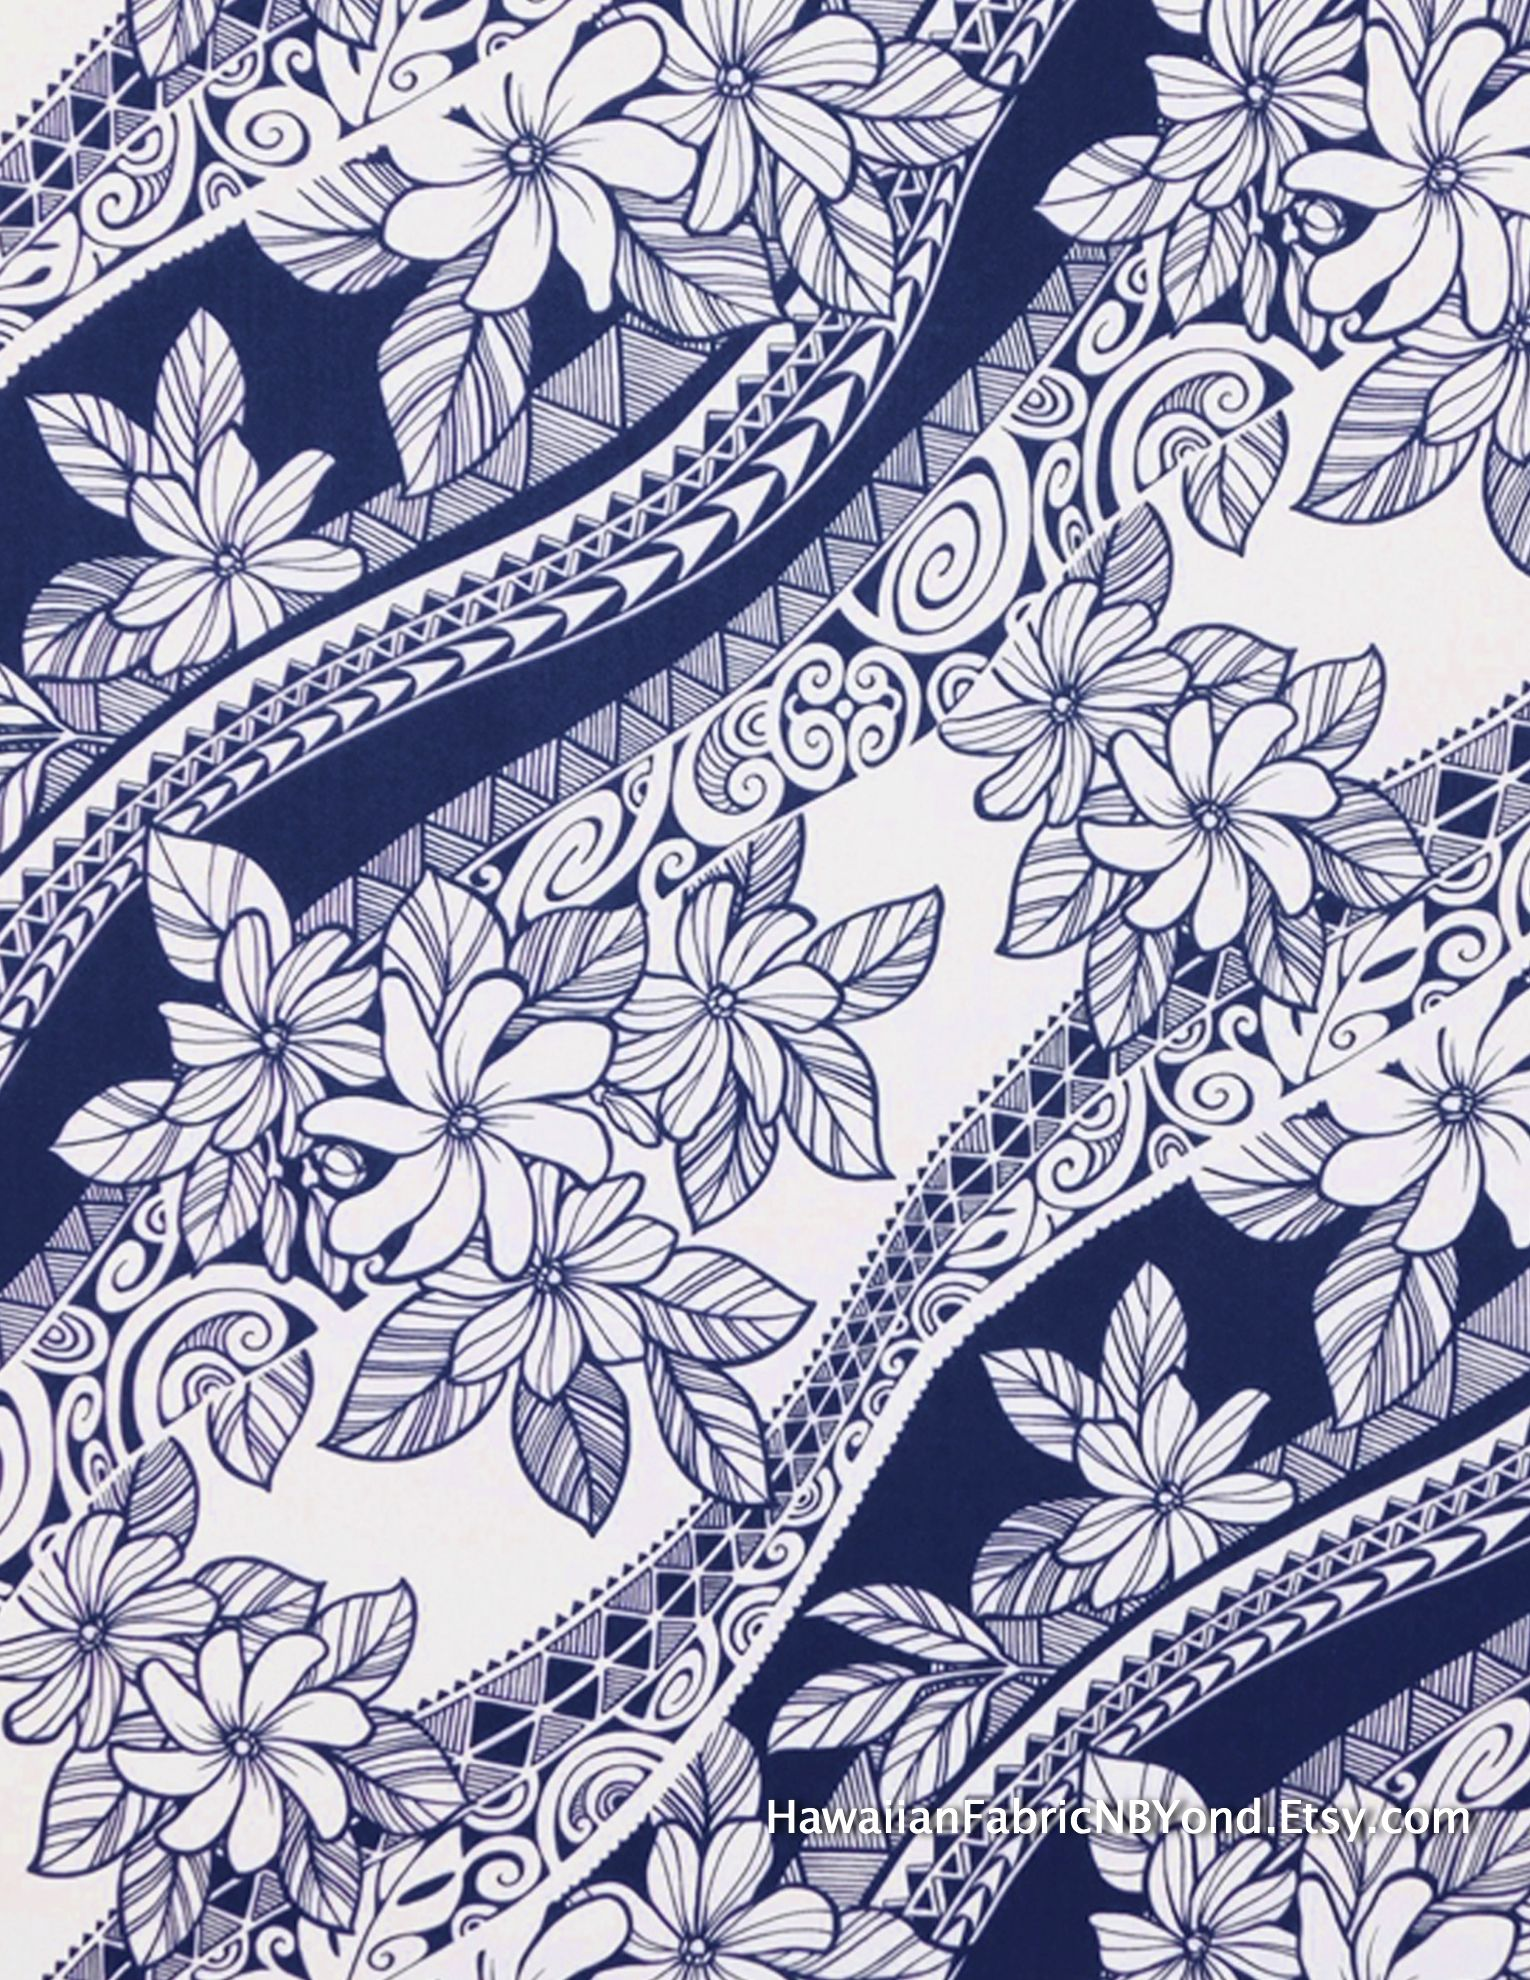 d49807372 Fabric: gorgeous Tiare flowers and Polynesian tapa patterns. By  HawaiianFabricNBYond on Etsy.com